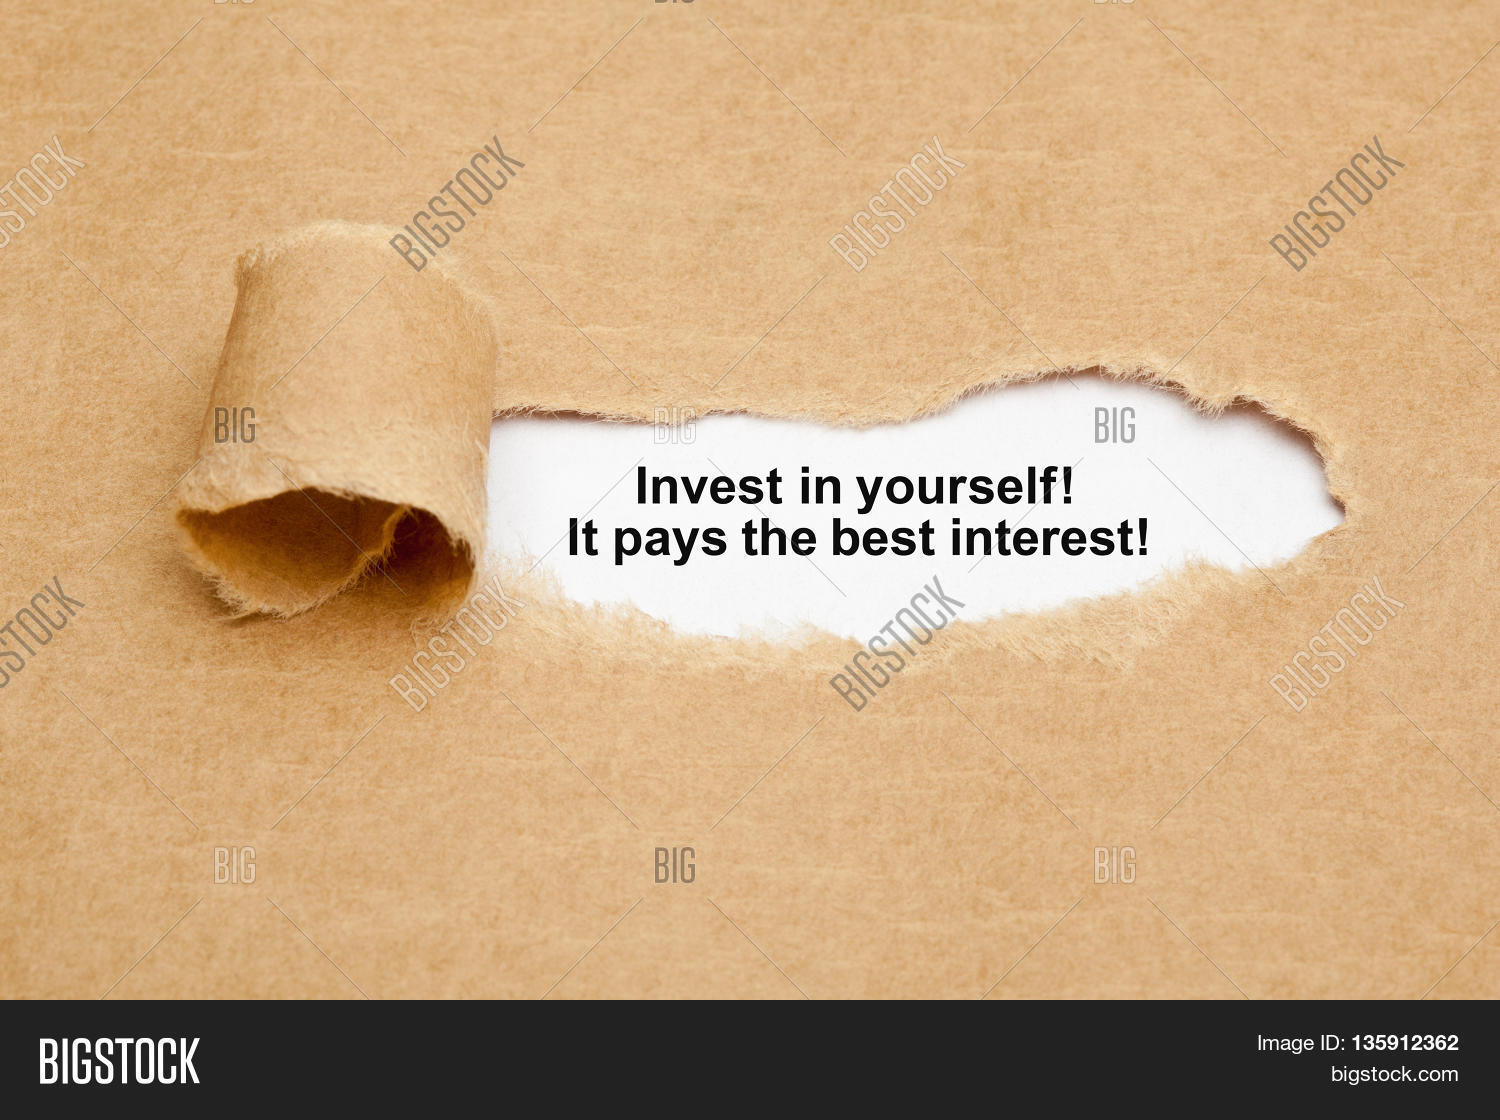 the quote invest in yourself it pays the best interest appearing the quote invest in yourself it pays the best interest appearing behind ripped brown paper